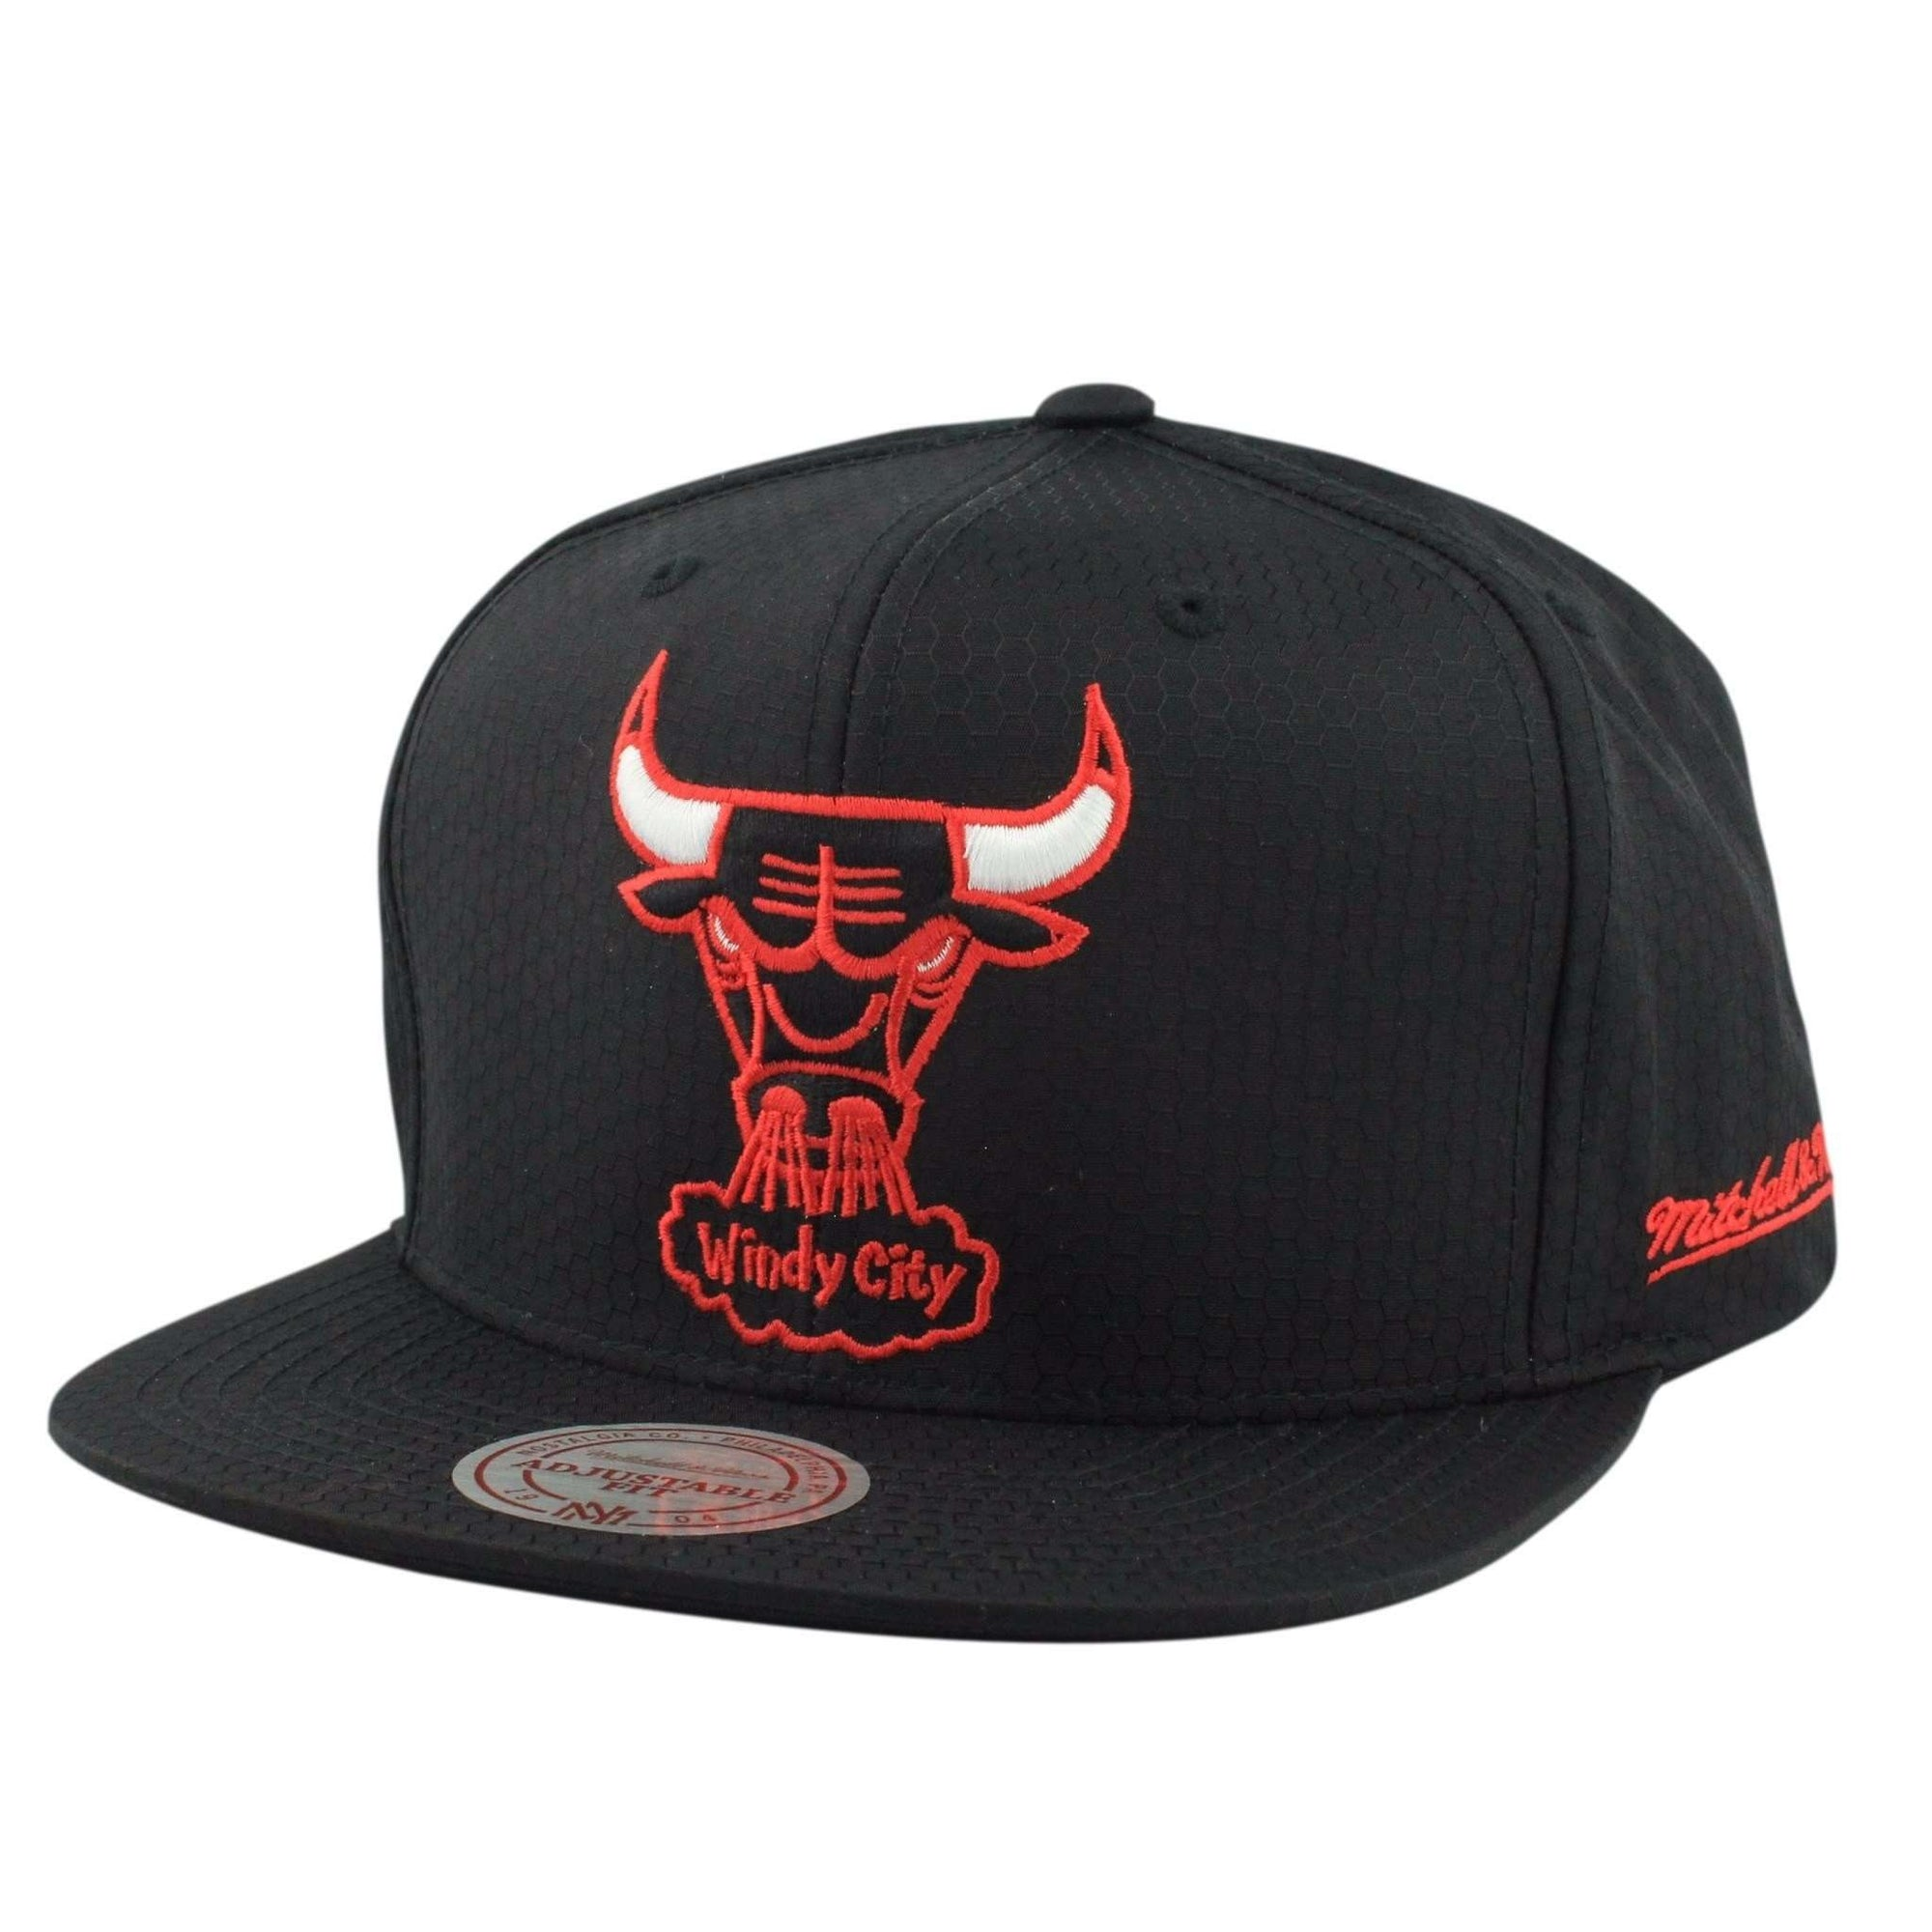 17b5c95f908 ... france mitchell and ness chicago bulls windy city black ripstop honey black  black snapback ea7a2 b124f